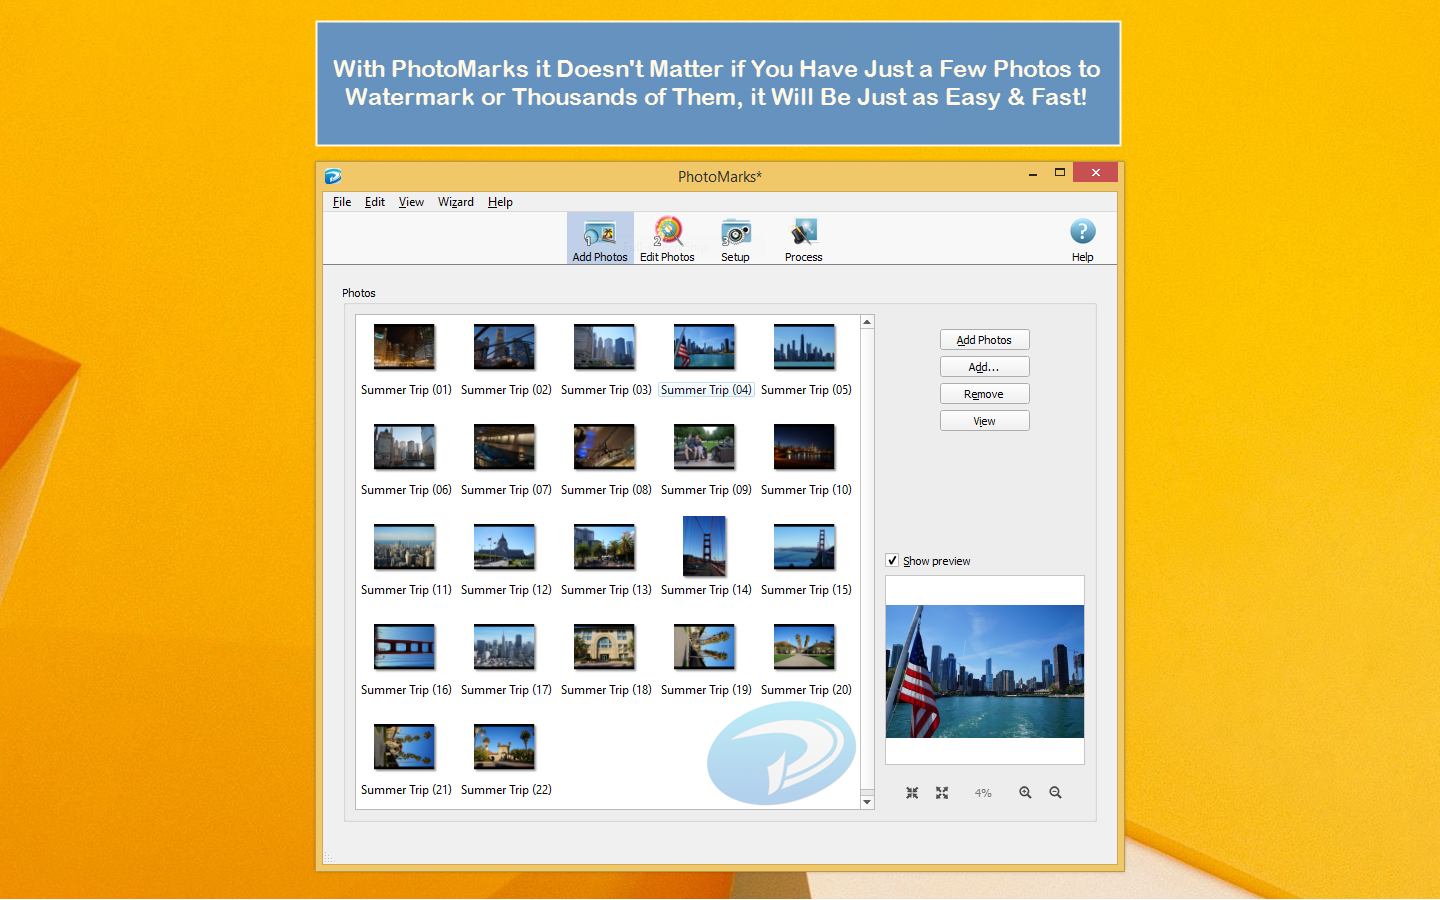 Free photo watermark software for mac PhotoMarks Batch Watermark Photos on Mac & PC